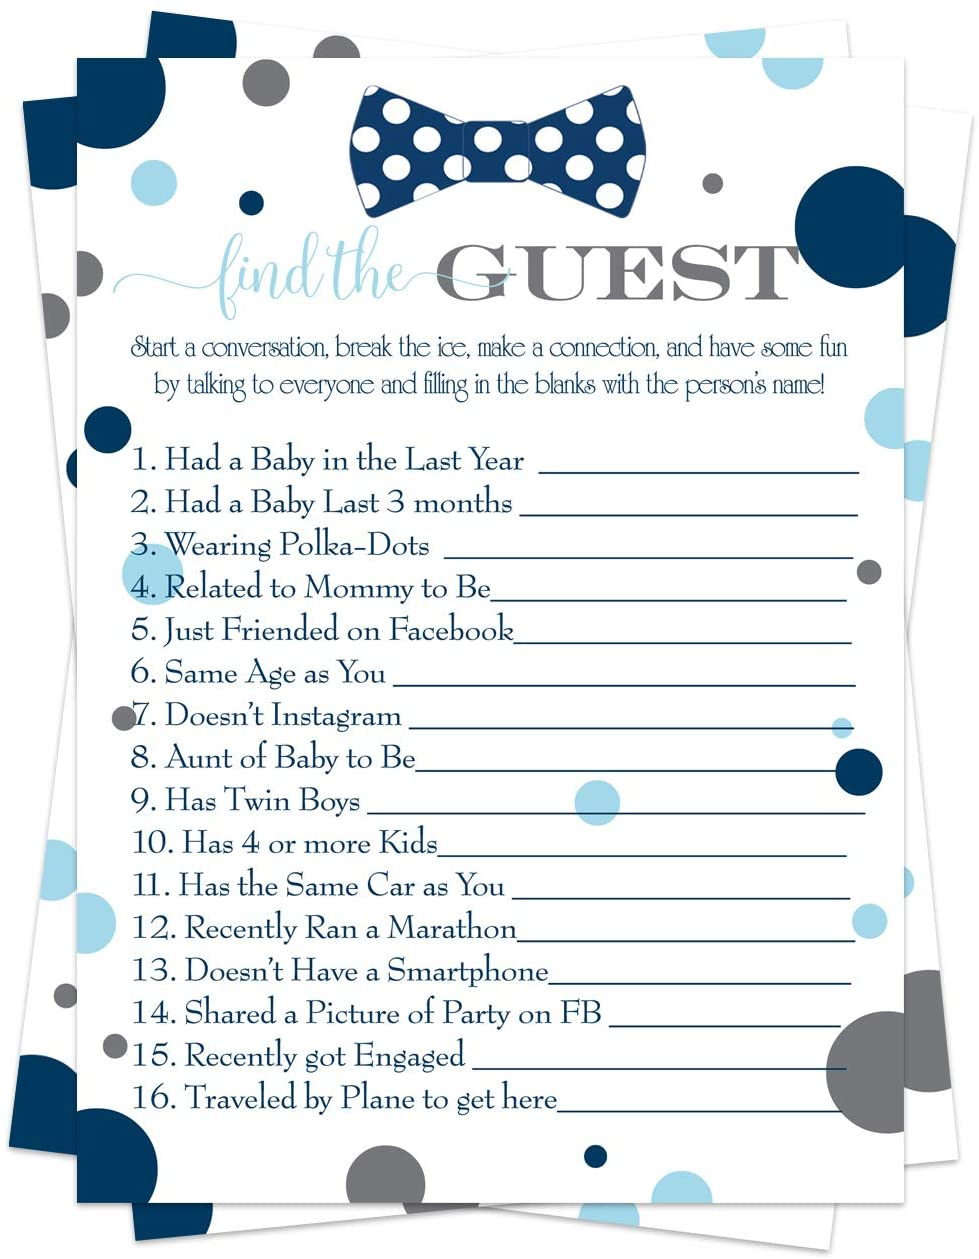 Bow Tie Baby Shower Game Pack (25 Cards) Find the Guest - Lets Mingle and Meet - Fun Conversation Starter - Oh Boy Sprinkle Activity - Little Man Party - Navy and Grey